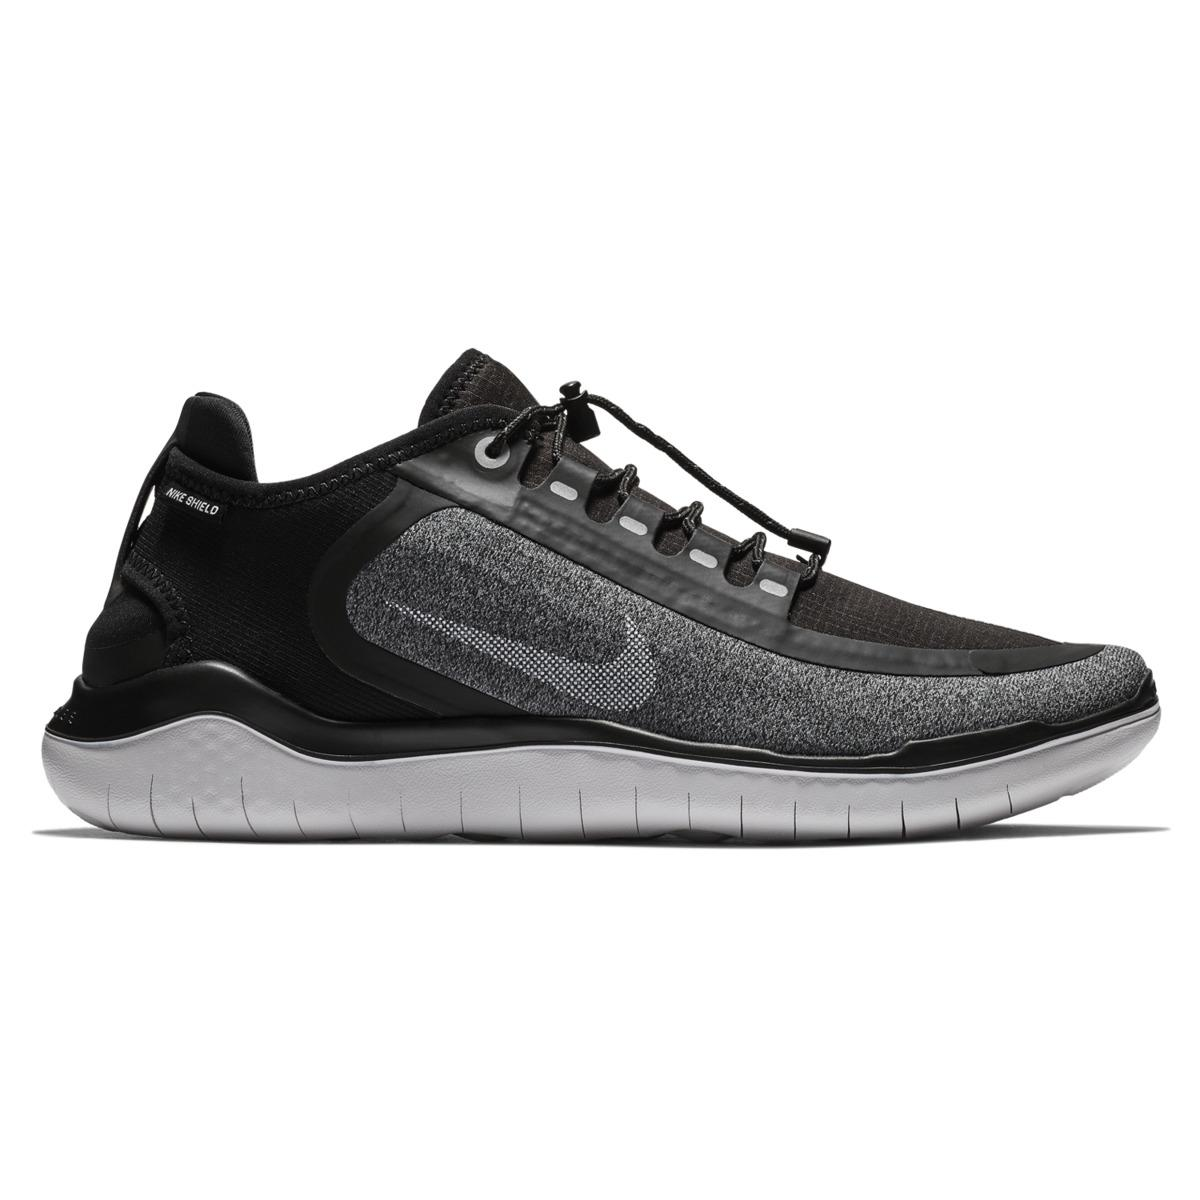 16a2afd7288f4 Nike Free Rn 2018 Shield Training Shoes in Black for Men - Lyst